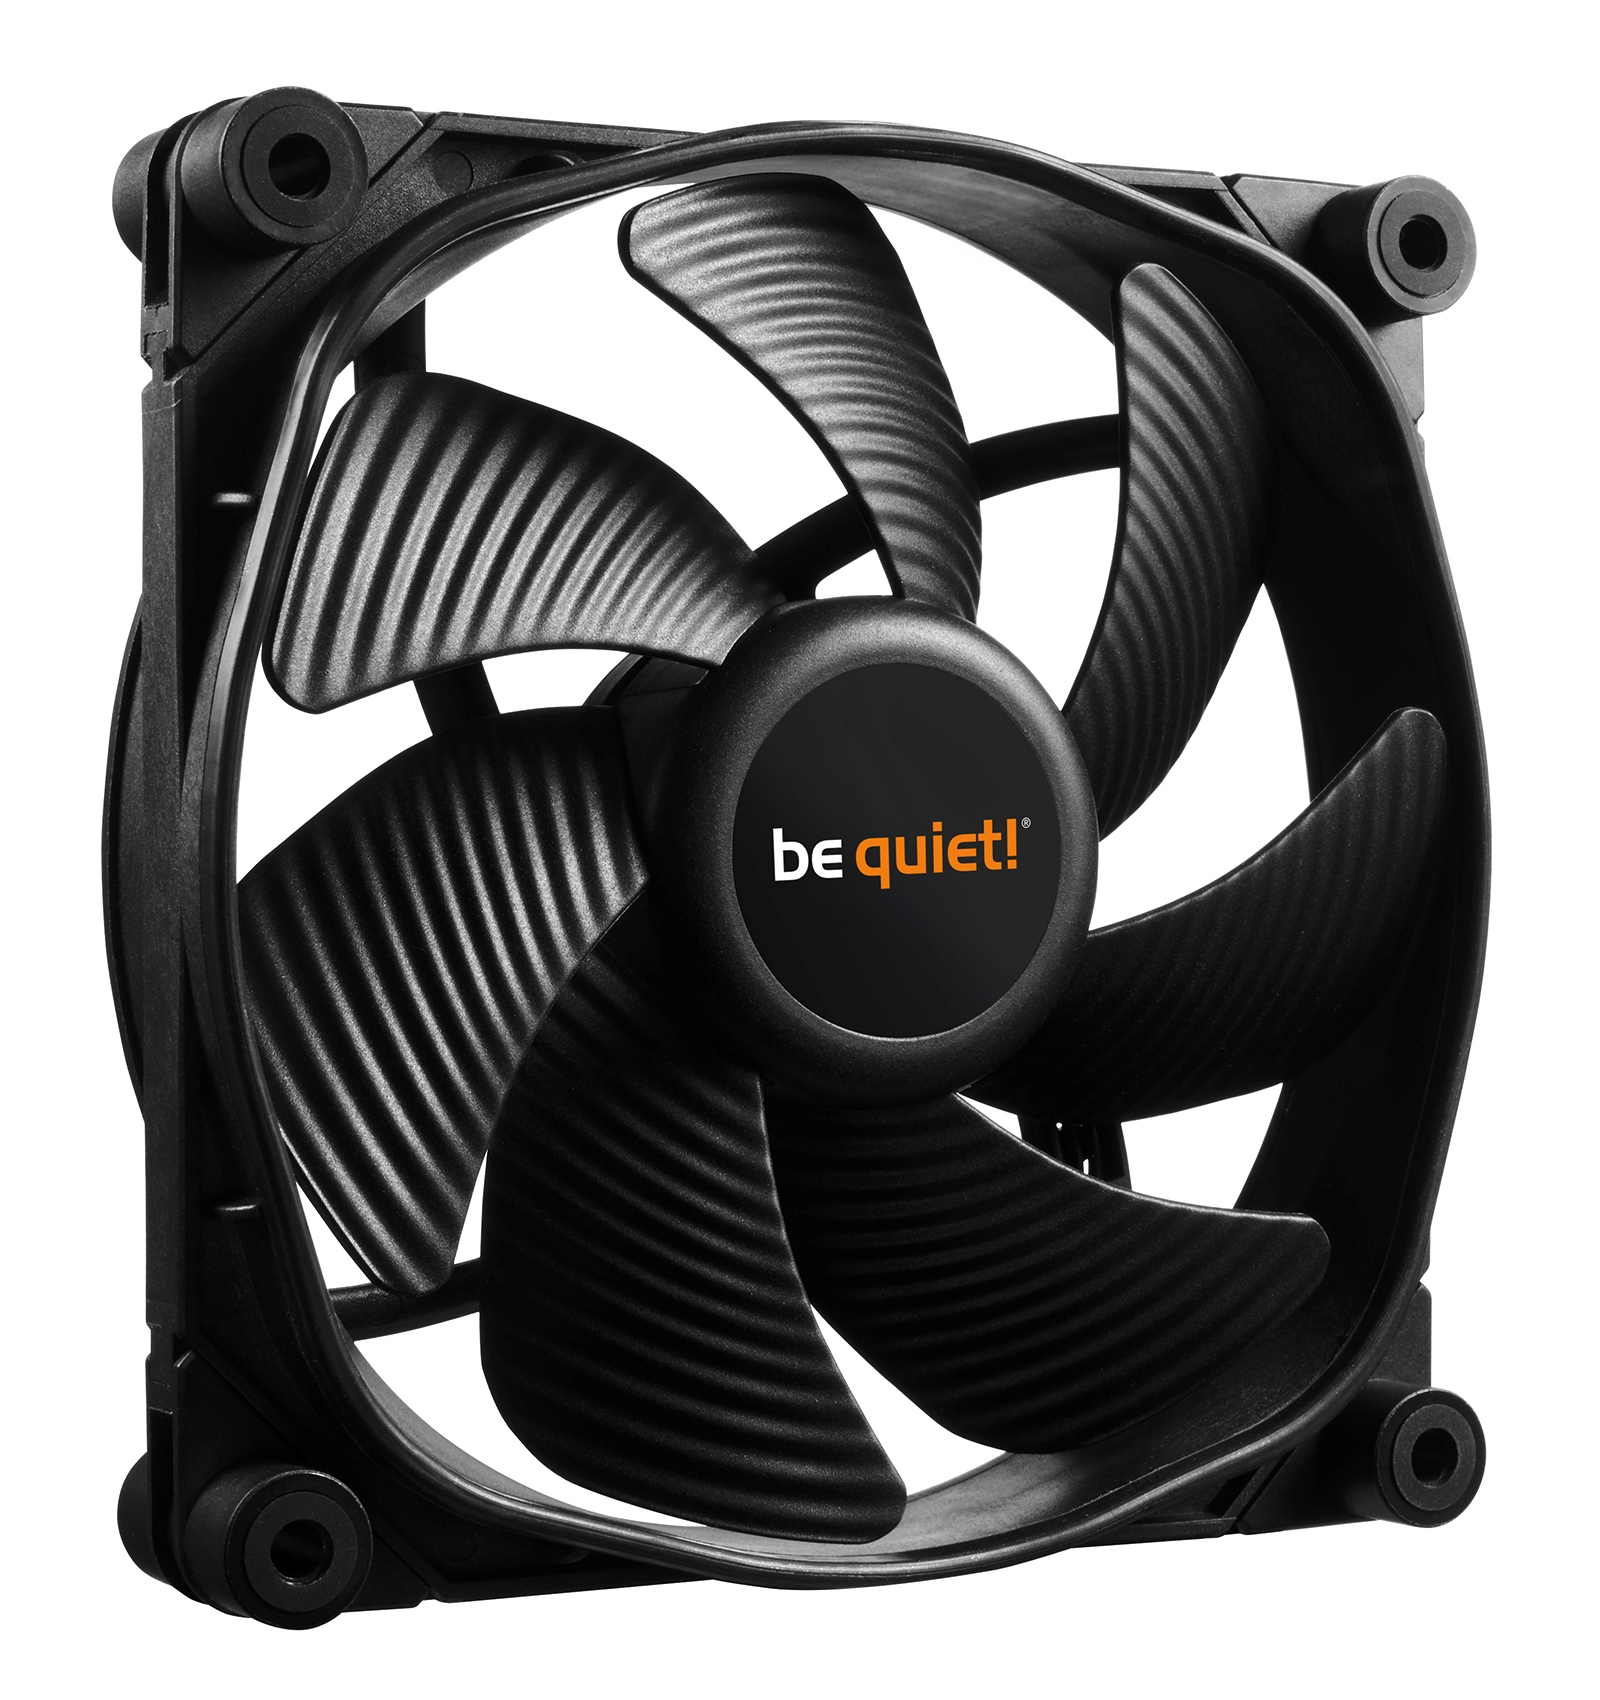 be quiet! SilentWings 3 120mm PWM high-speed, 120x120x25, 2200 rpm, 28,6 dB, 73,33 cfm, 4 pin